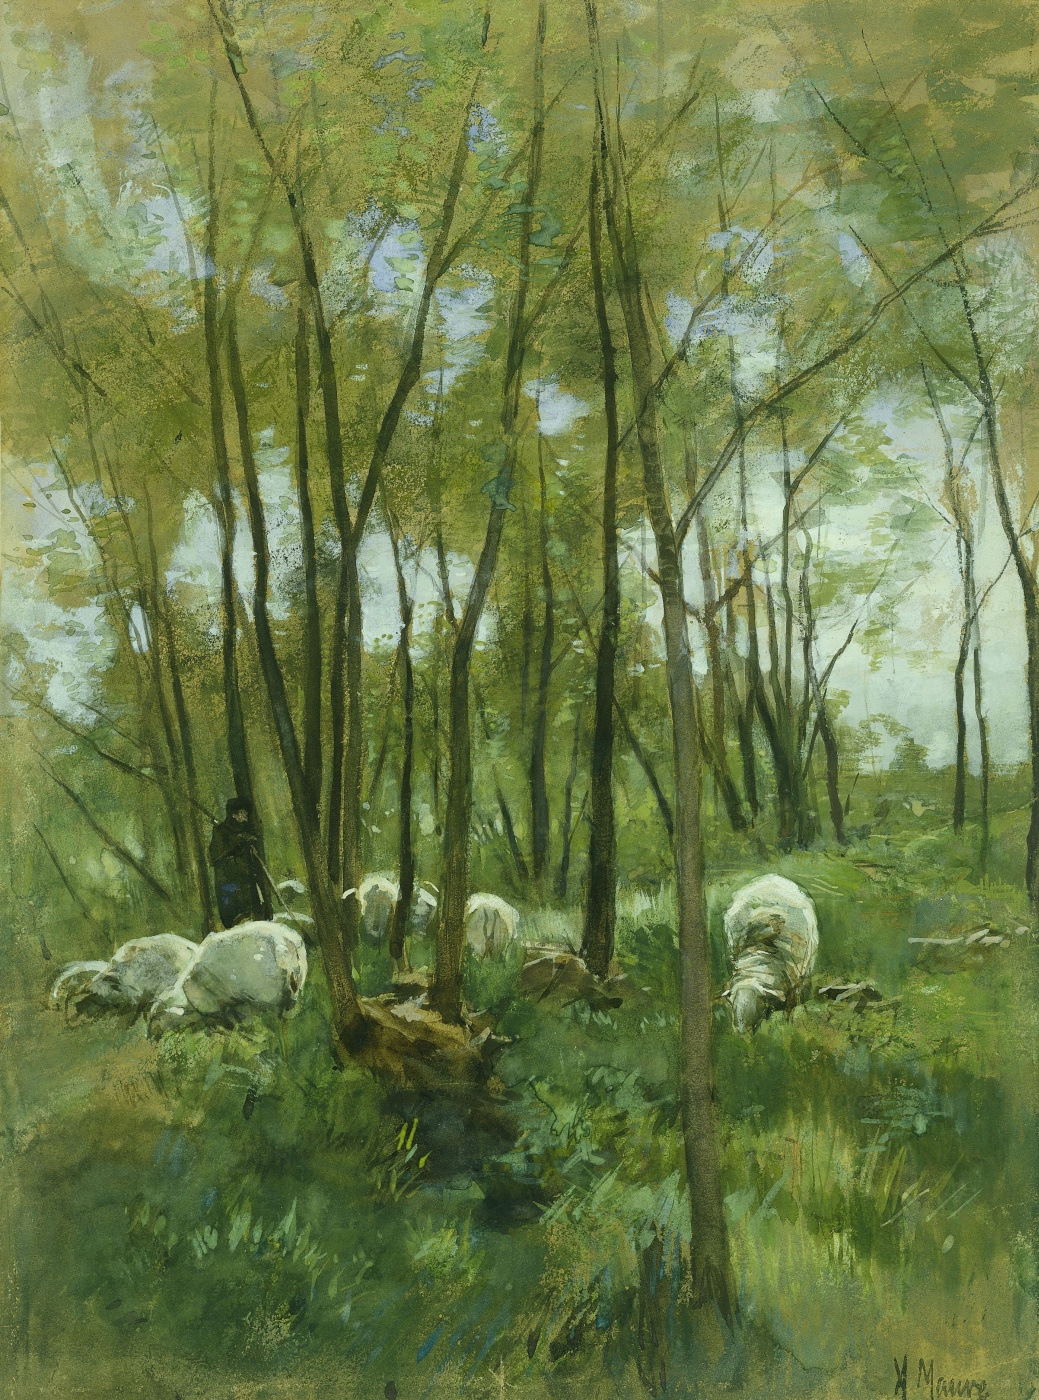 Anton Maouve. Flock of sheep in the woods